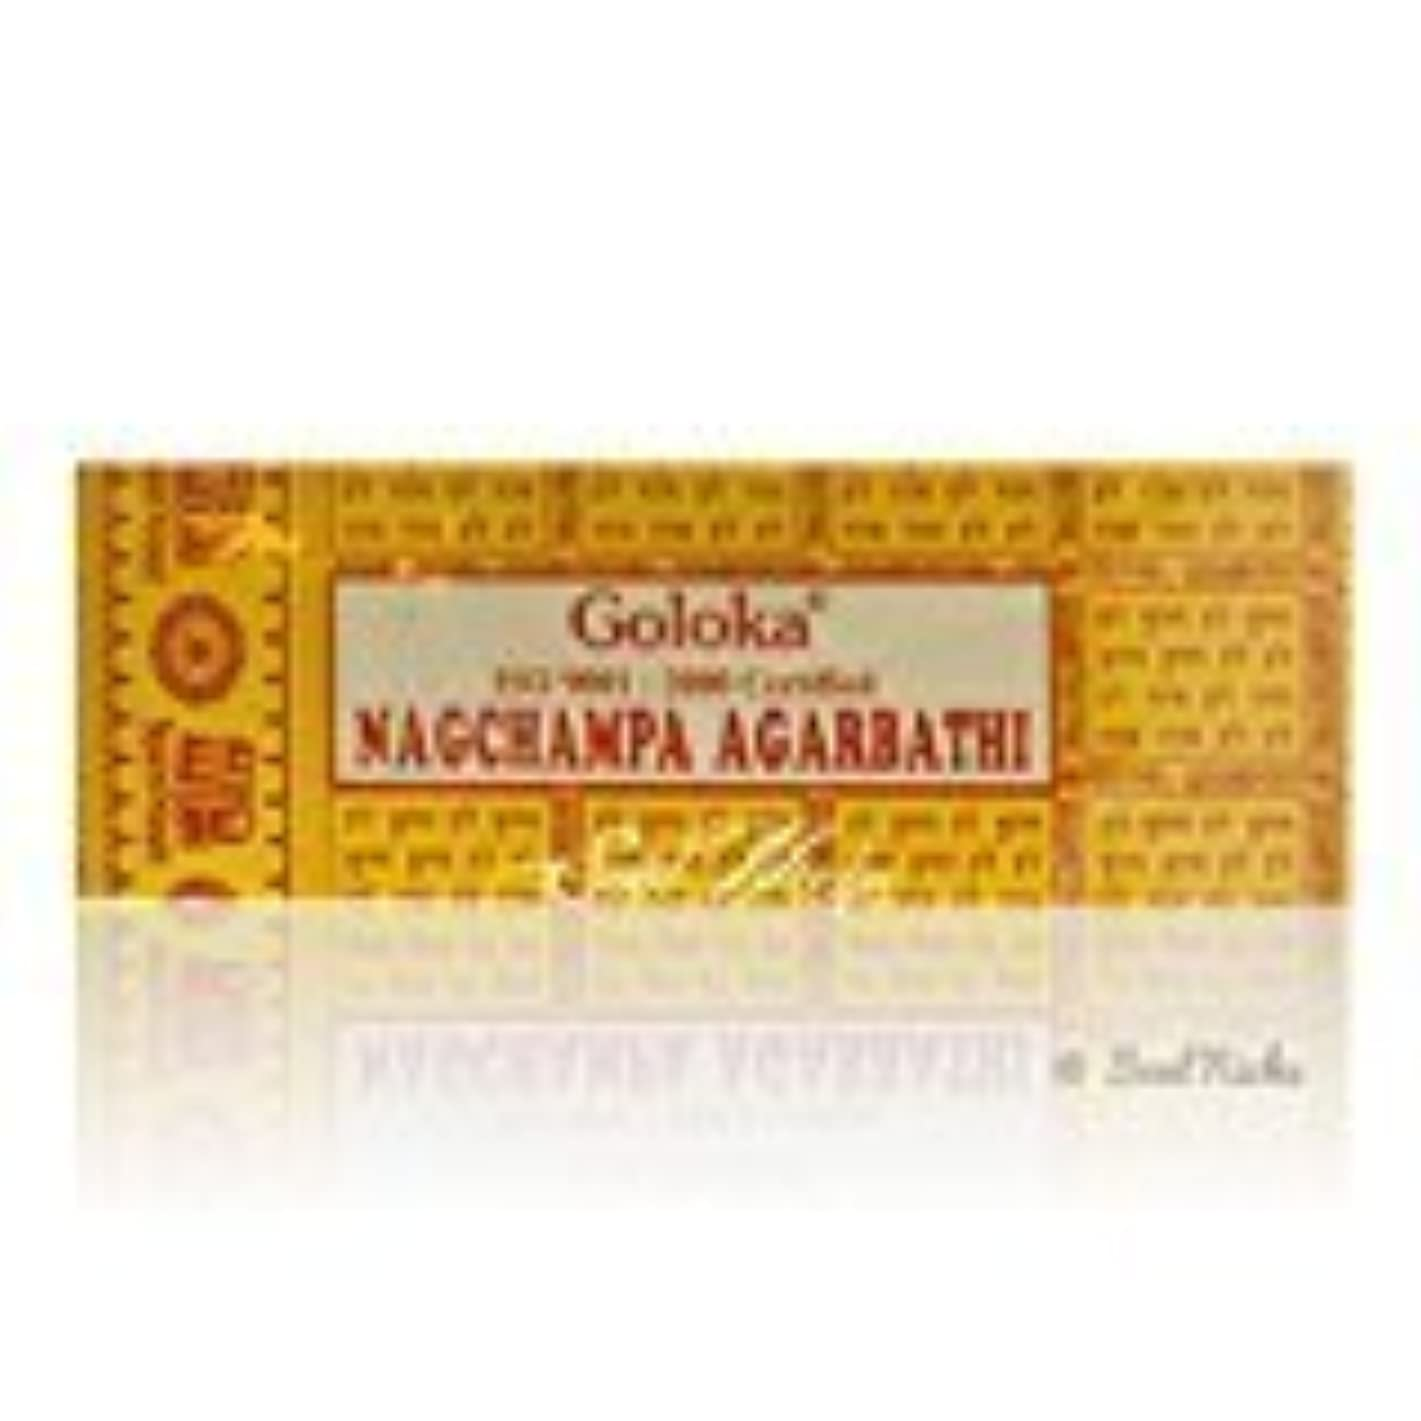 兵士彼女軽く100g Grams Goloka Nag Champa Agarbathi Incense Sticks - High Quality [並行輸入品]